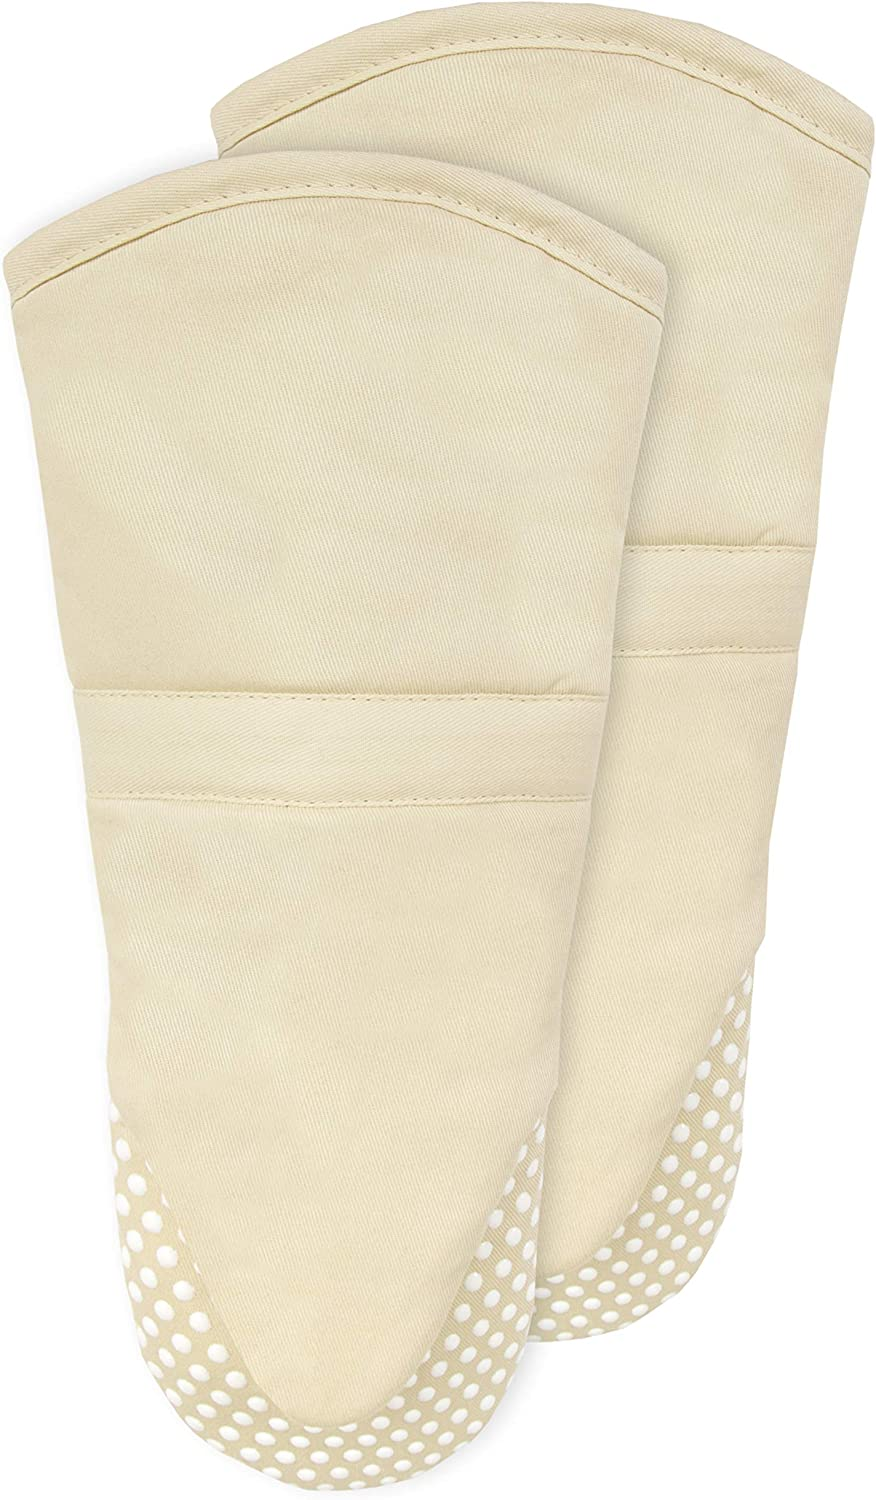 RITZ Royale Silicone Oven Mitt, 2-Pack, Latte